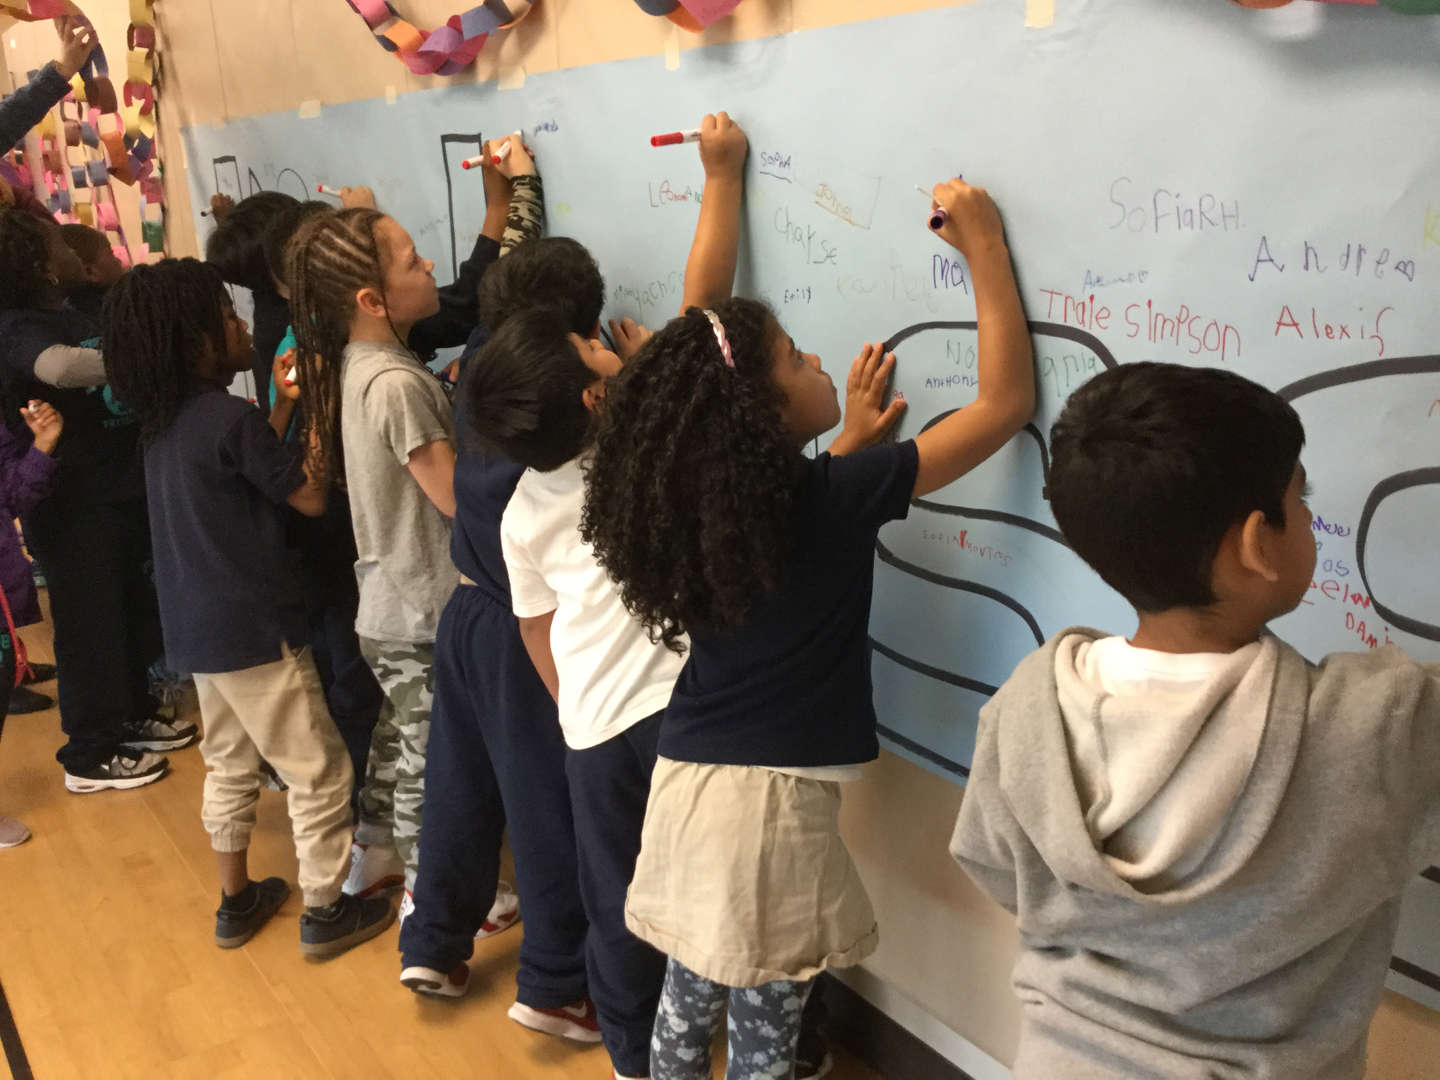 Kids sign their name to the mural.